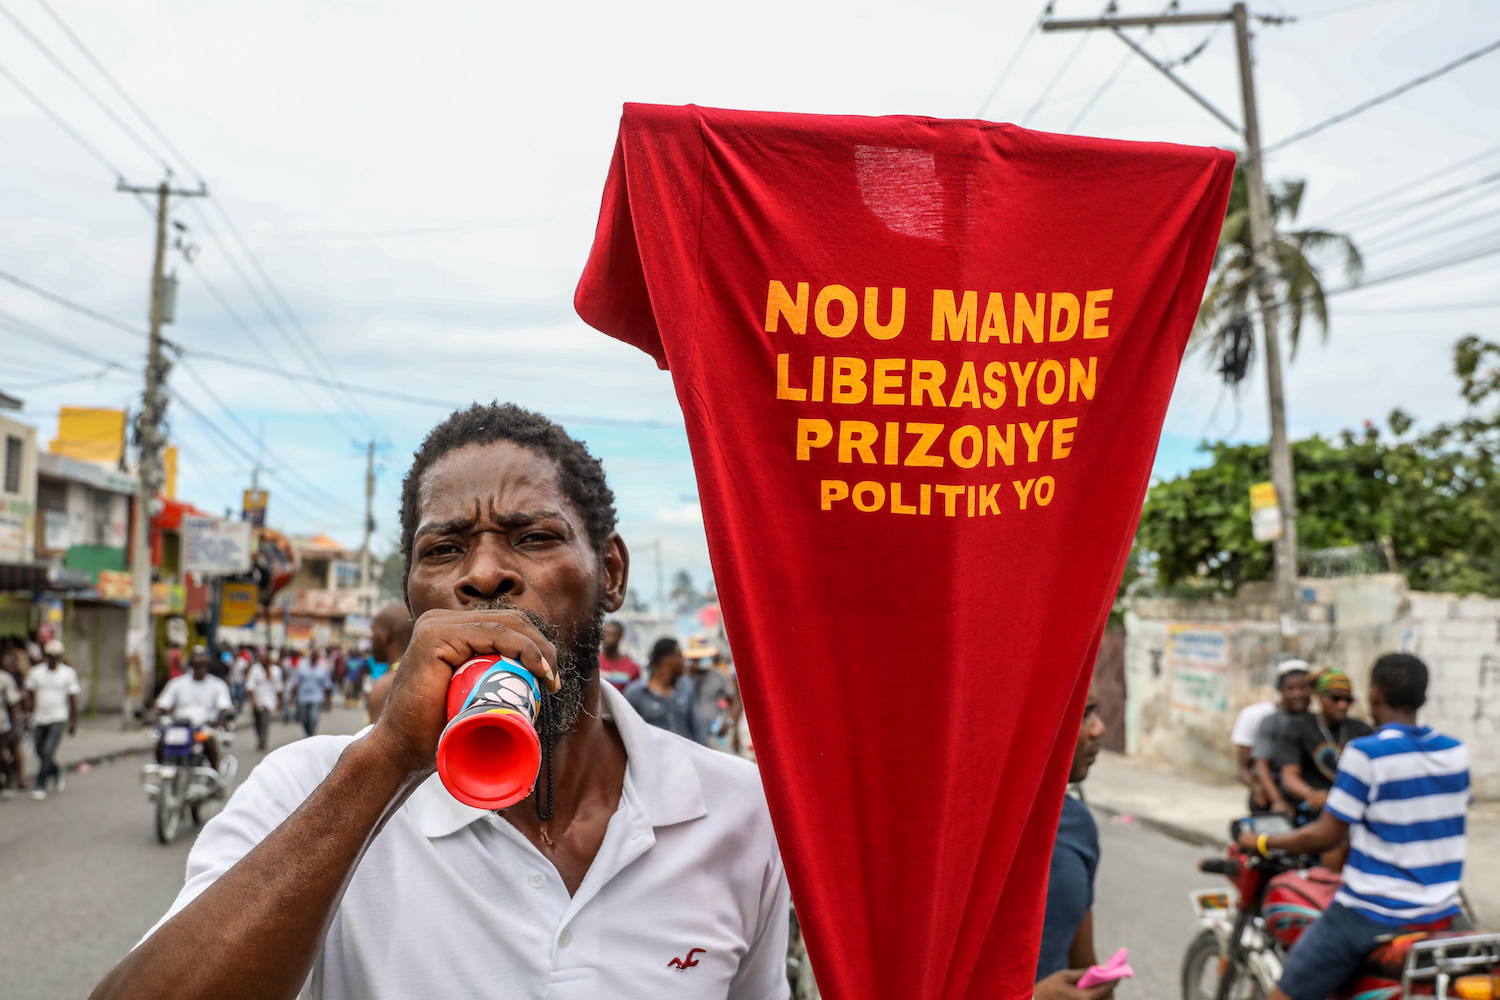 Opposition protesters call for the departure of President Jovenel Moise as they march through the streets of Port-au-Prince on Nov. 18, 2020.